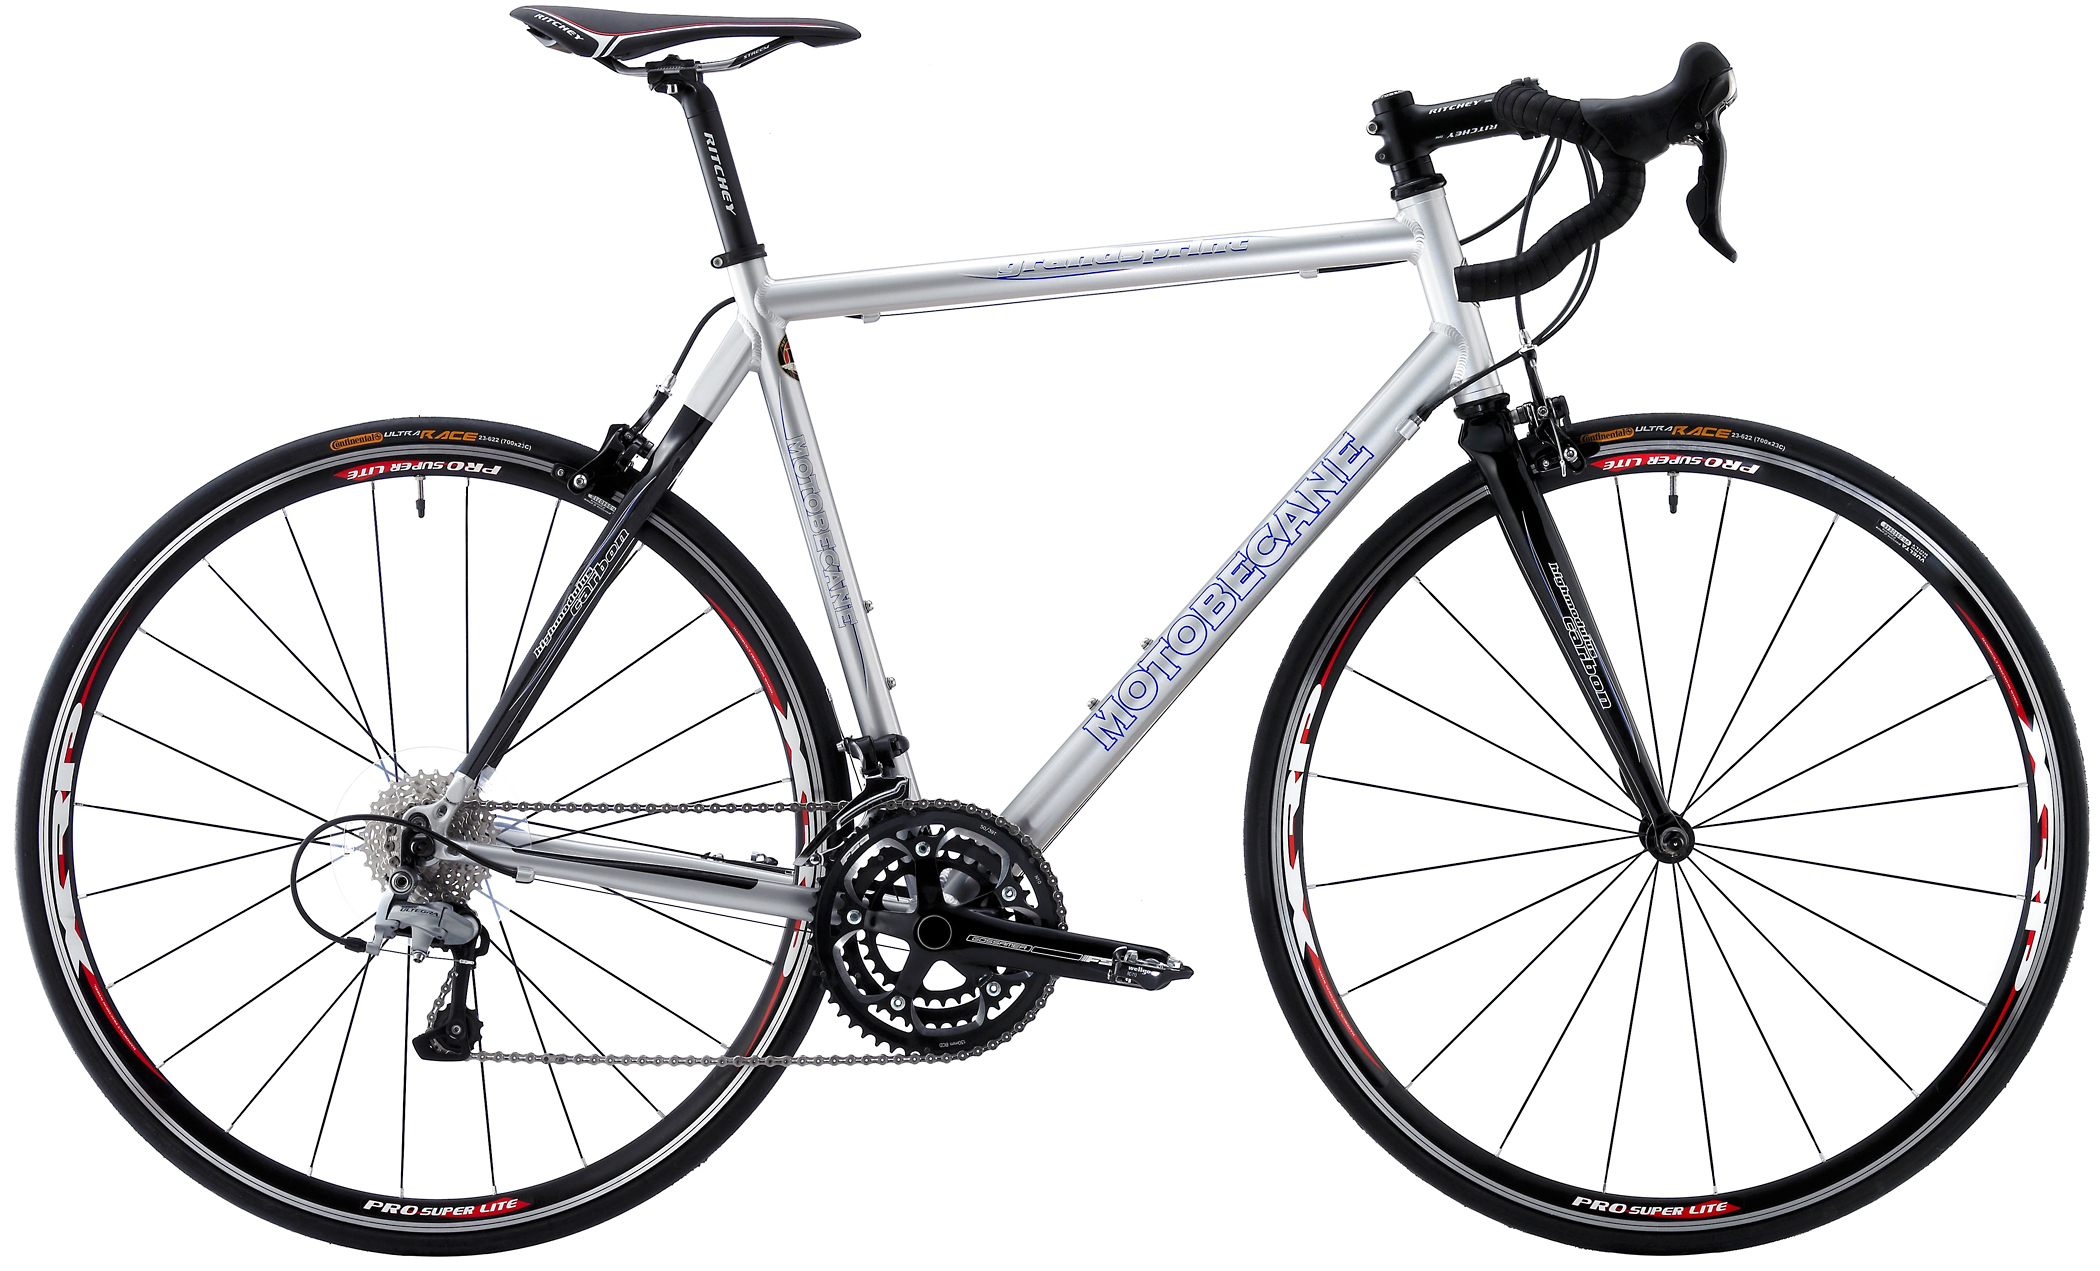 Save Up To 60 Off New Shimano Ultegra Road Bikes